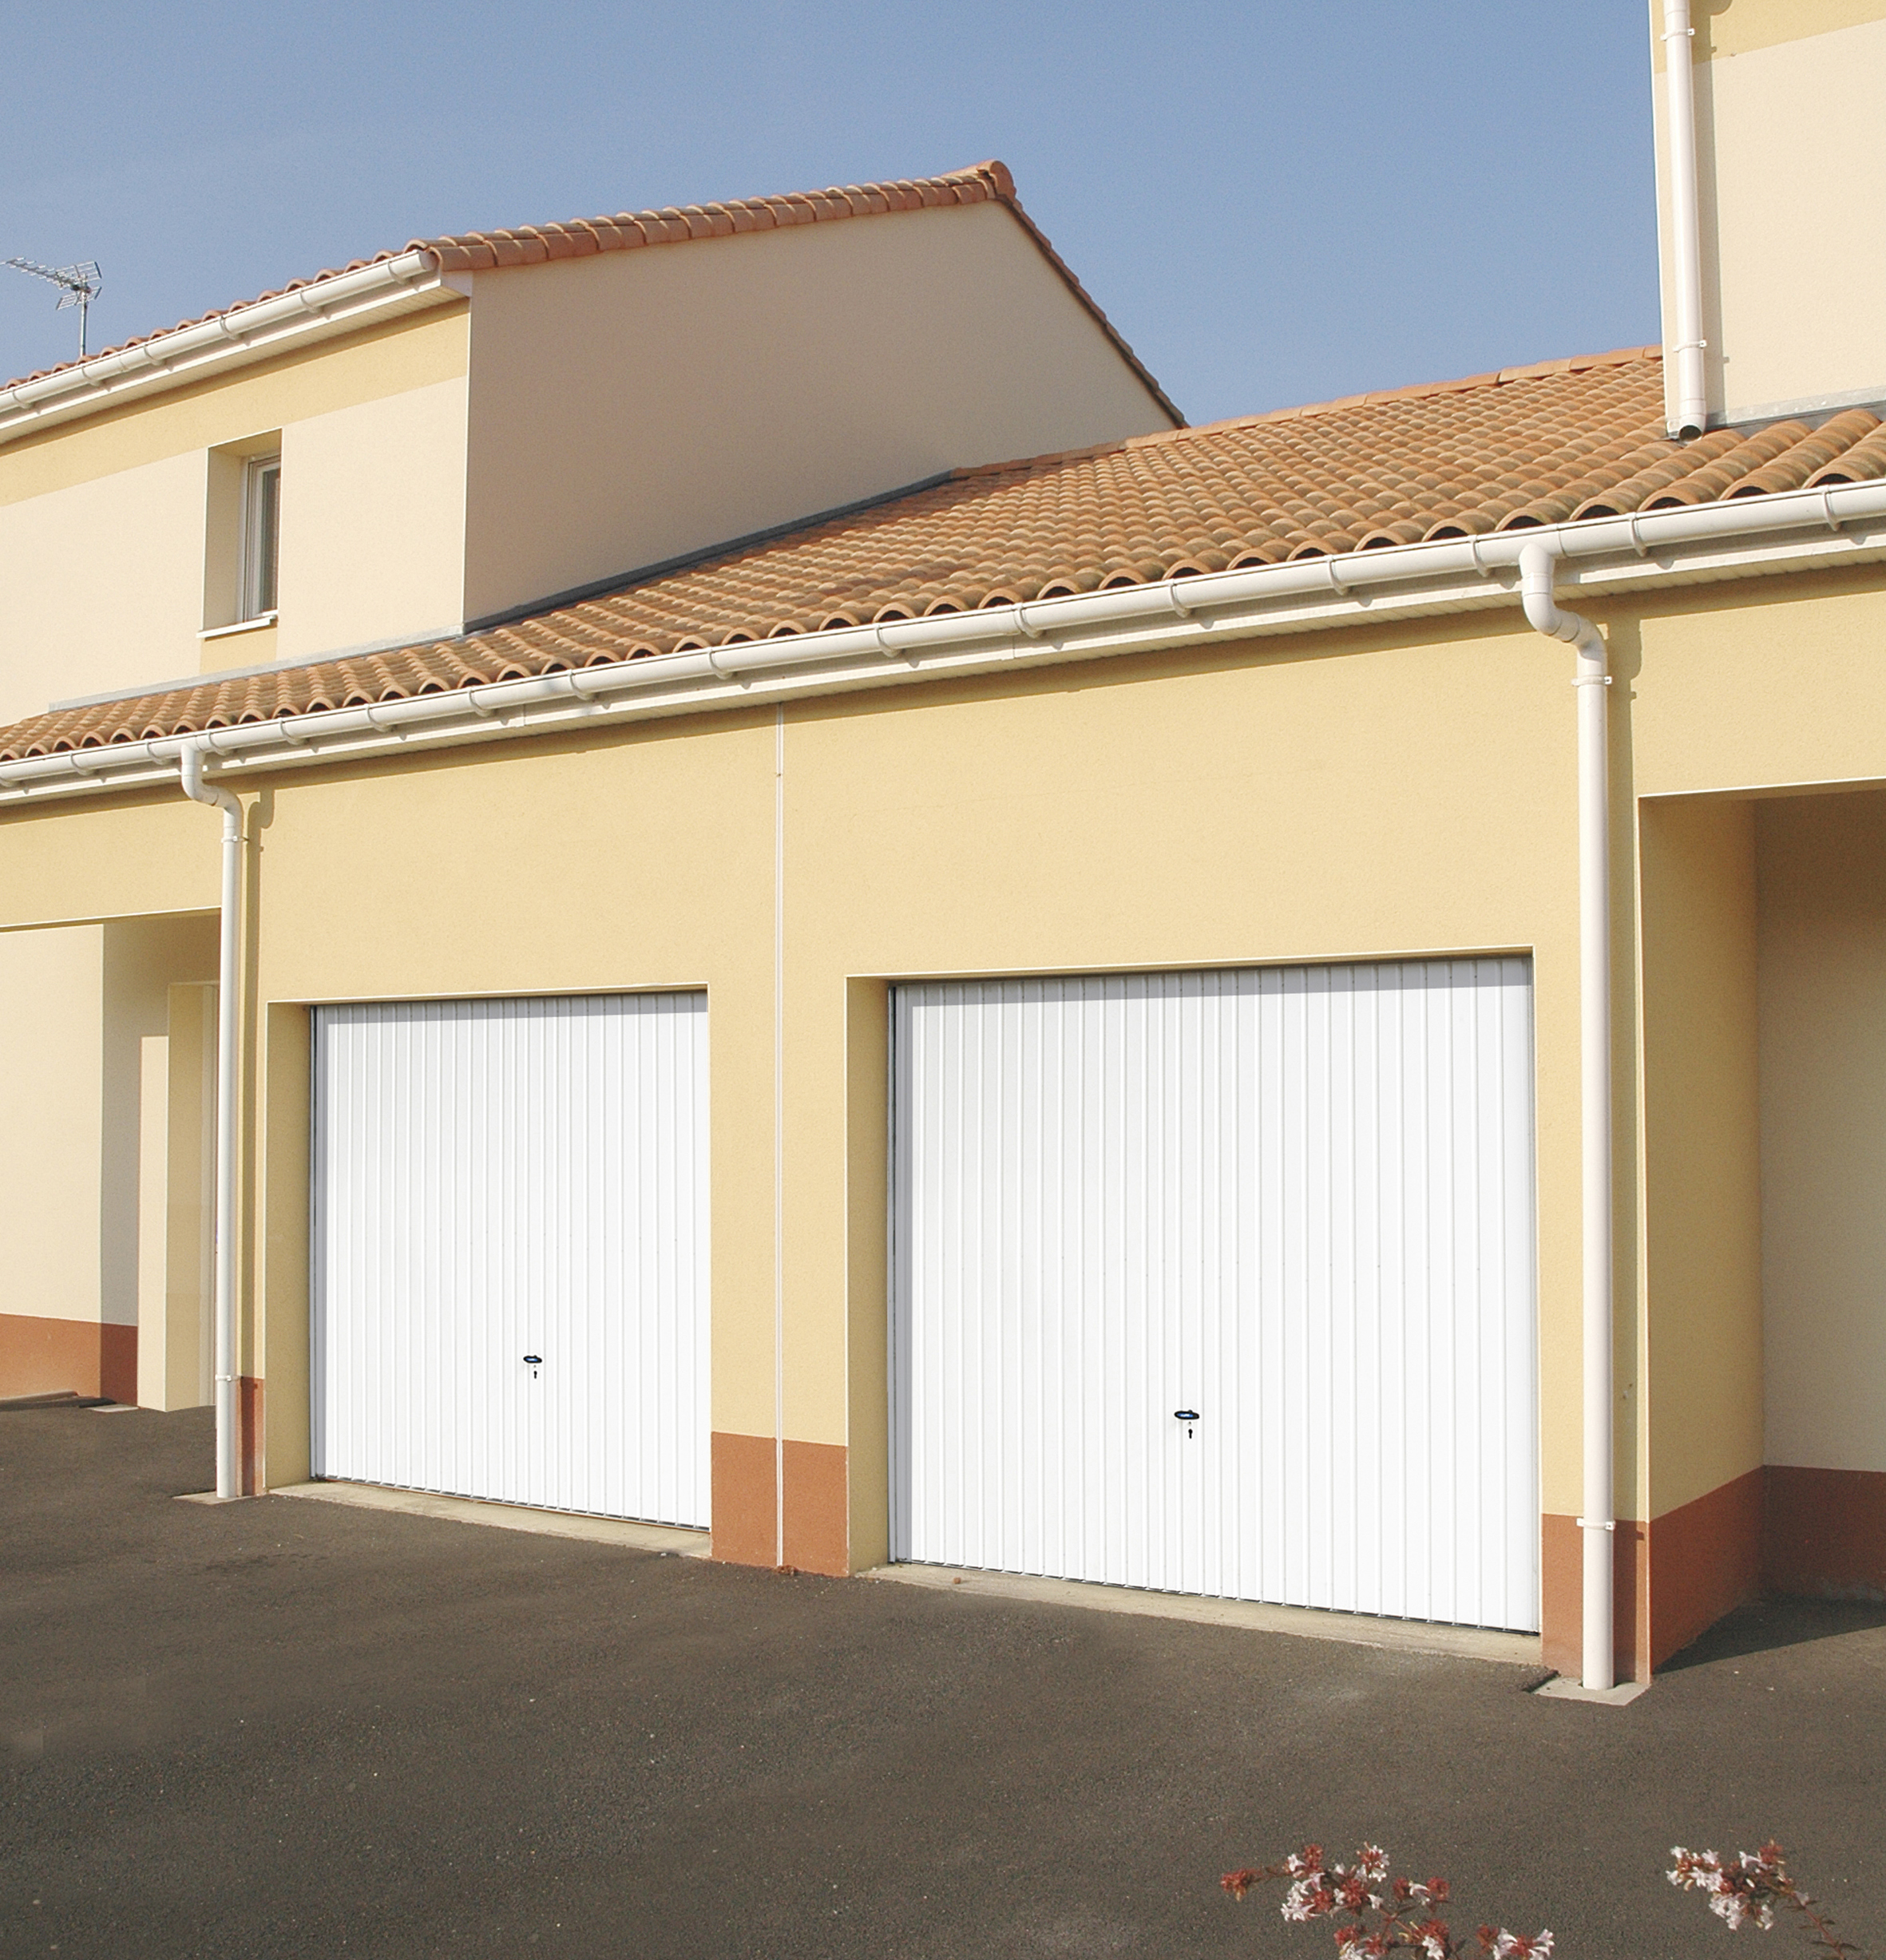 Baies fermetures grenoble fen tres volets baies for Bras de porte de garage basculante